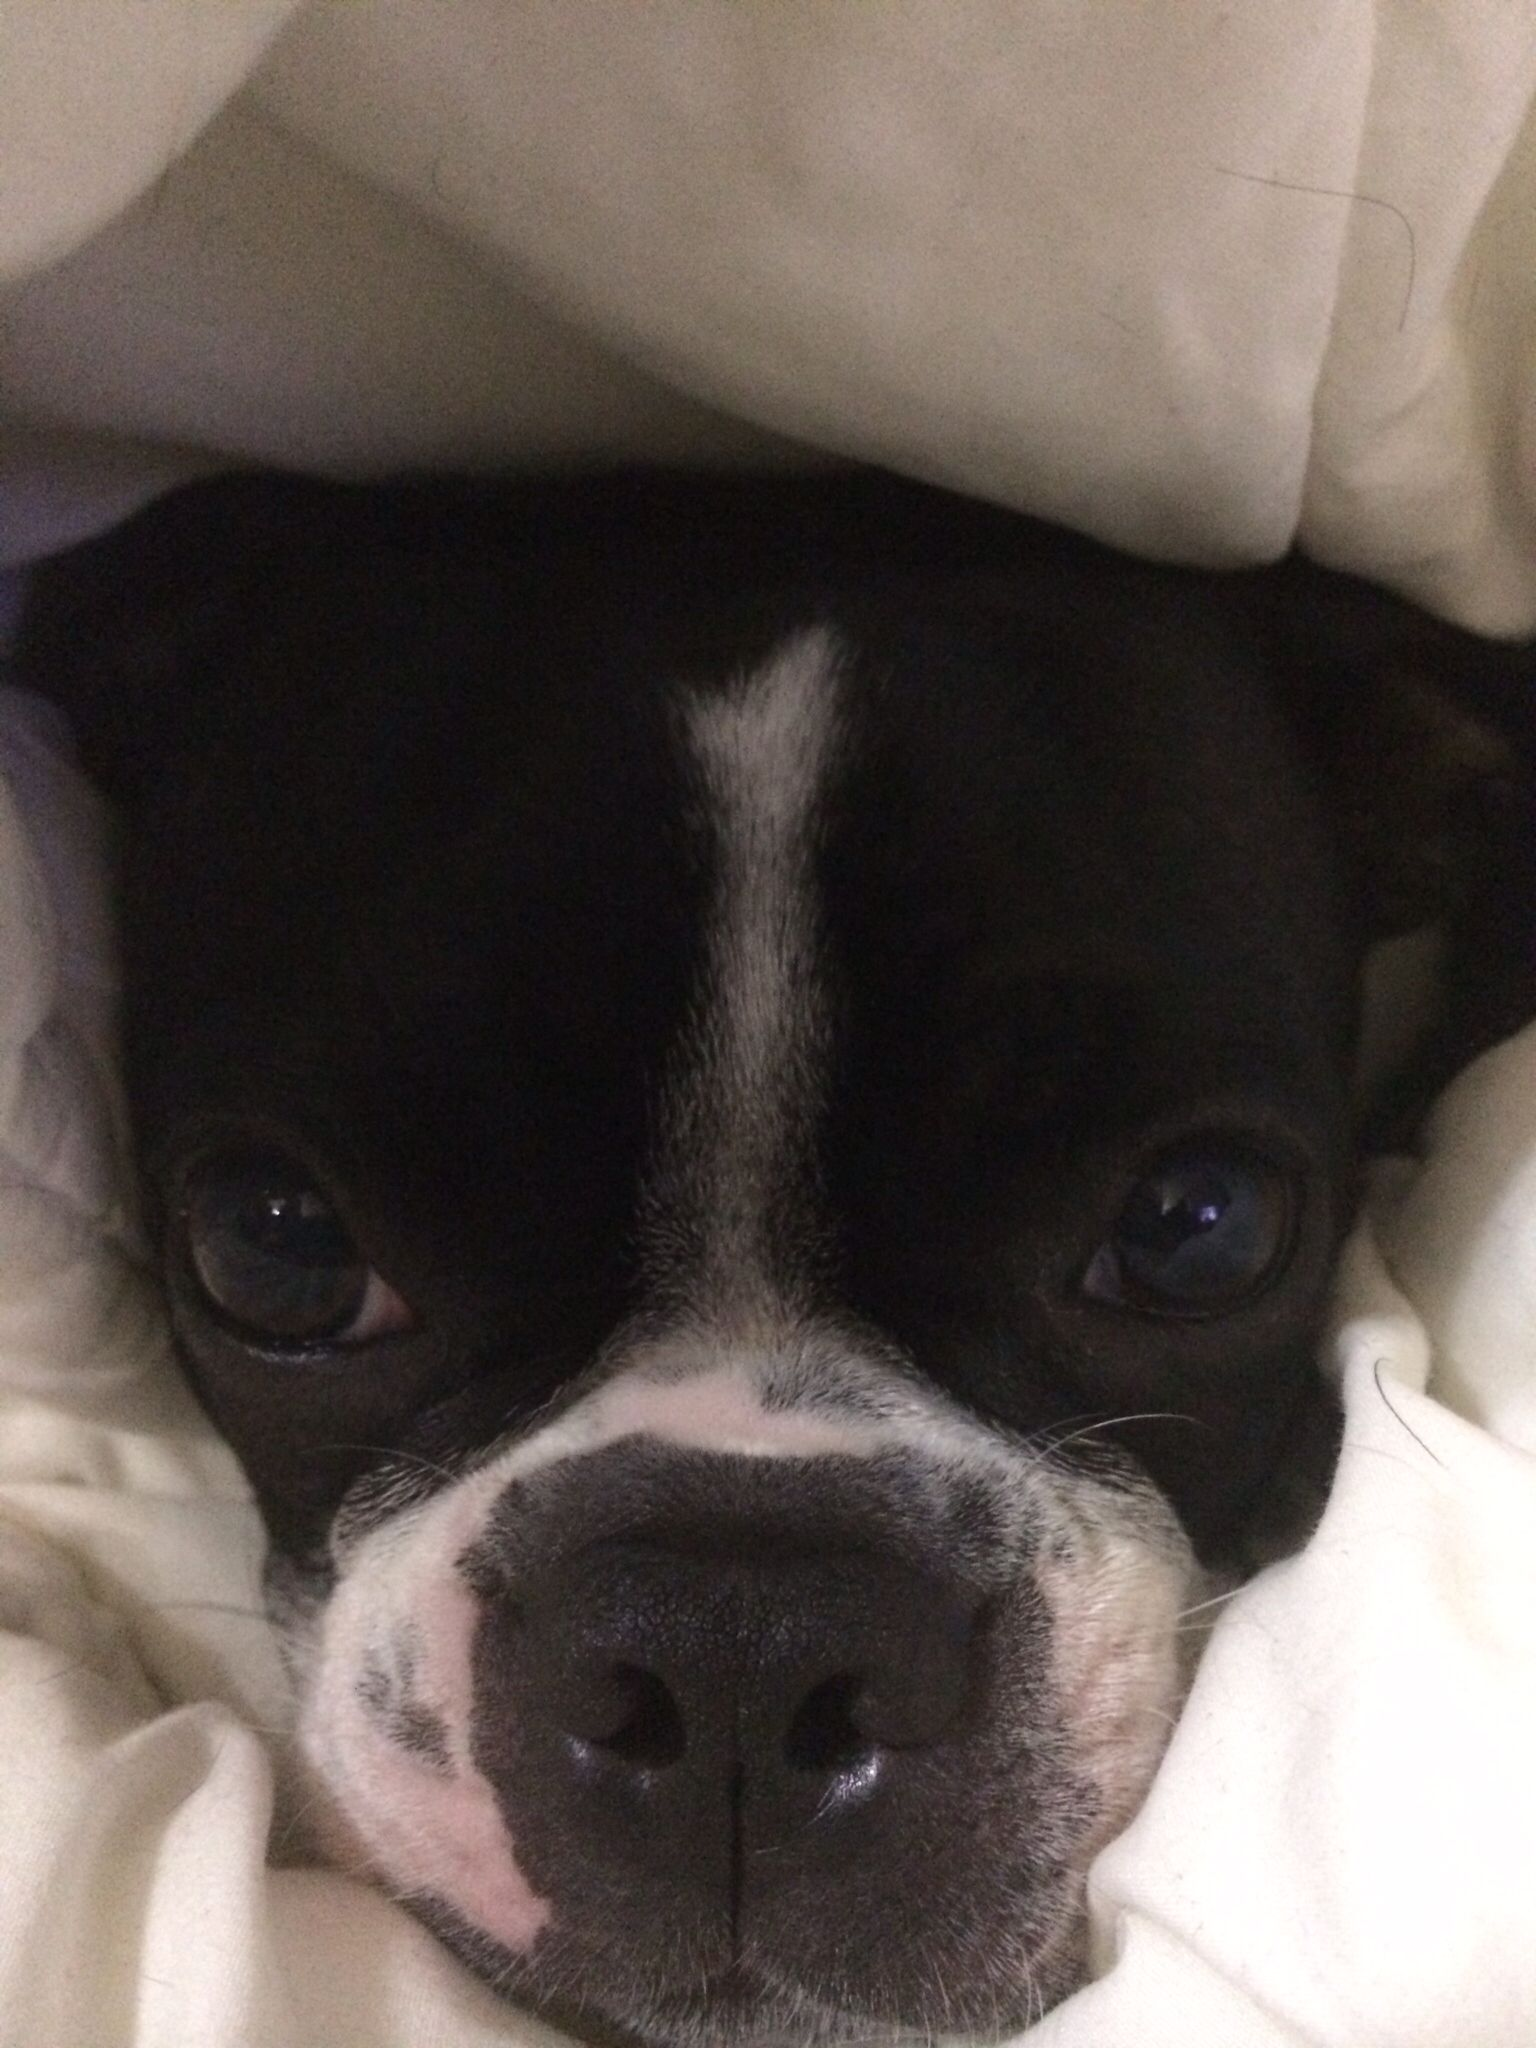 Snuggle bug boston! Luna from Austin TX Snuggles